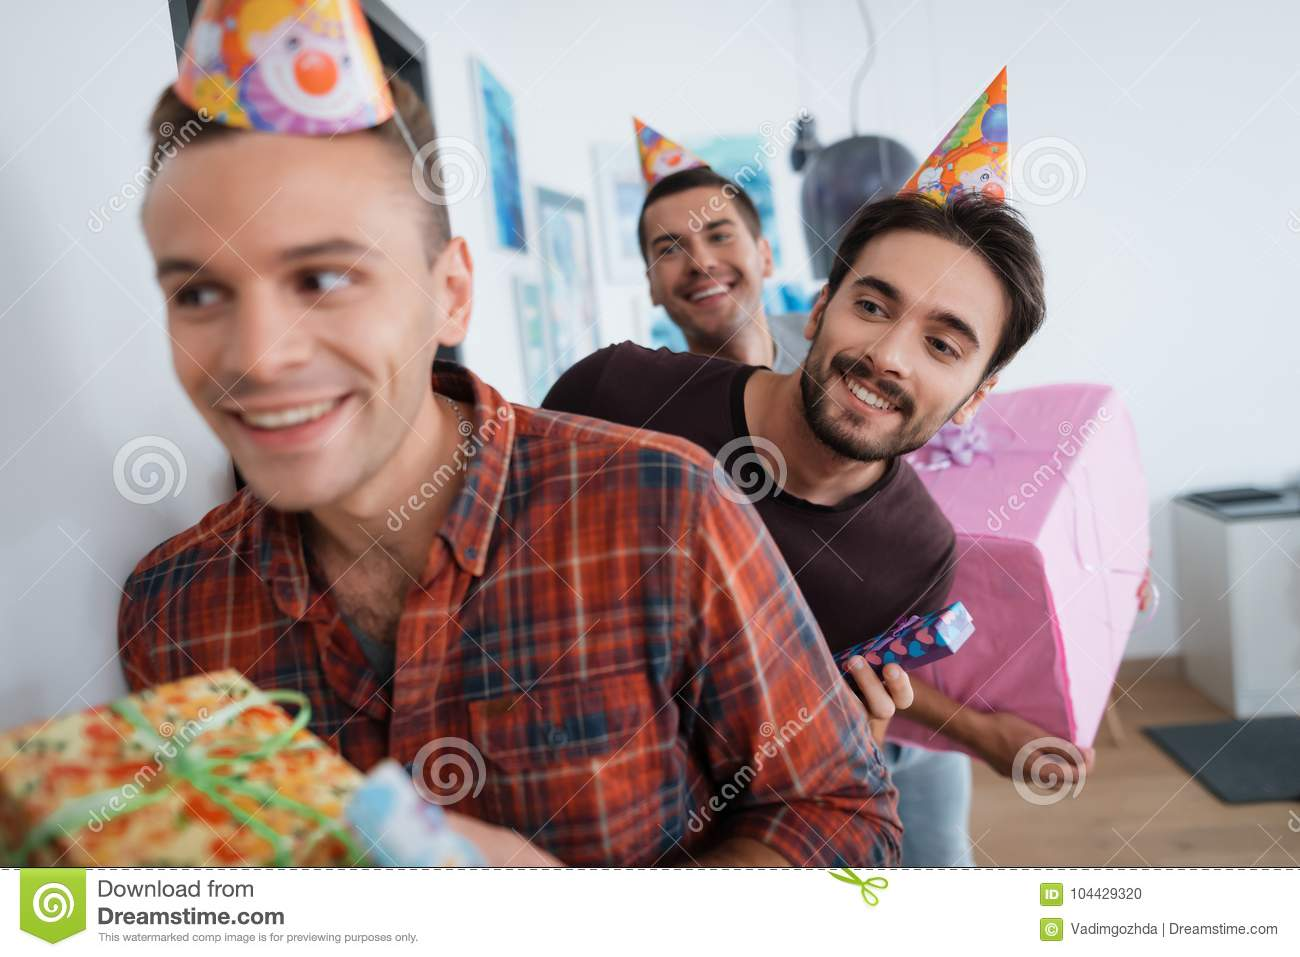 Men In Birthday Hats Are Preparing A Surprise Party They To Meet